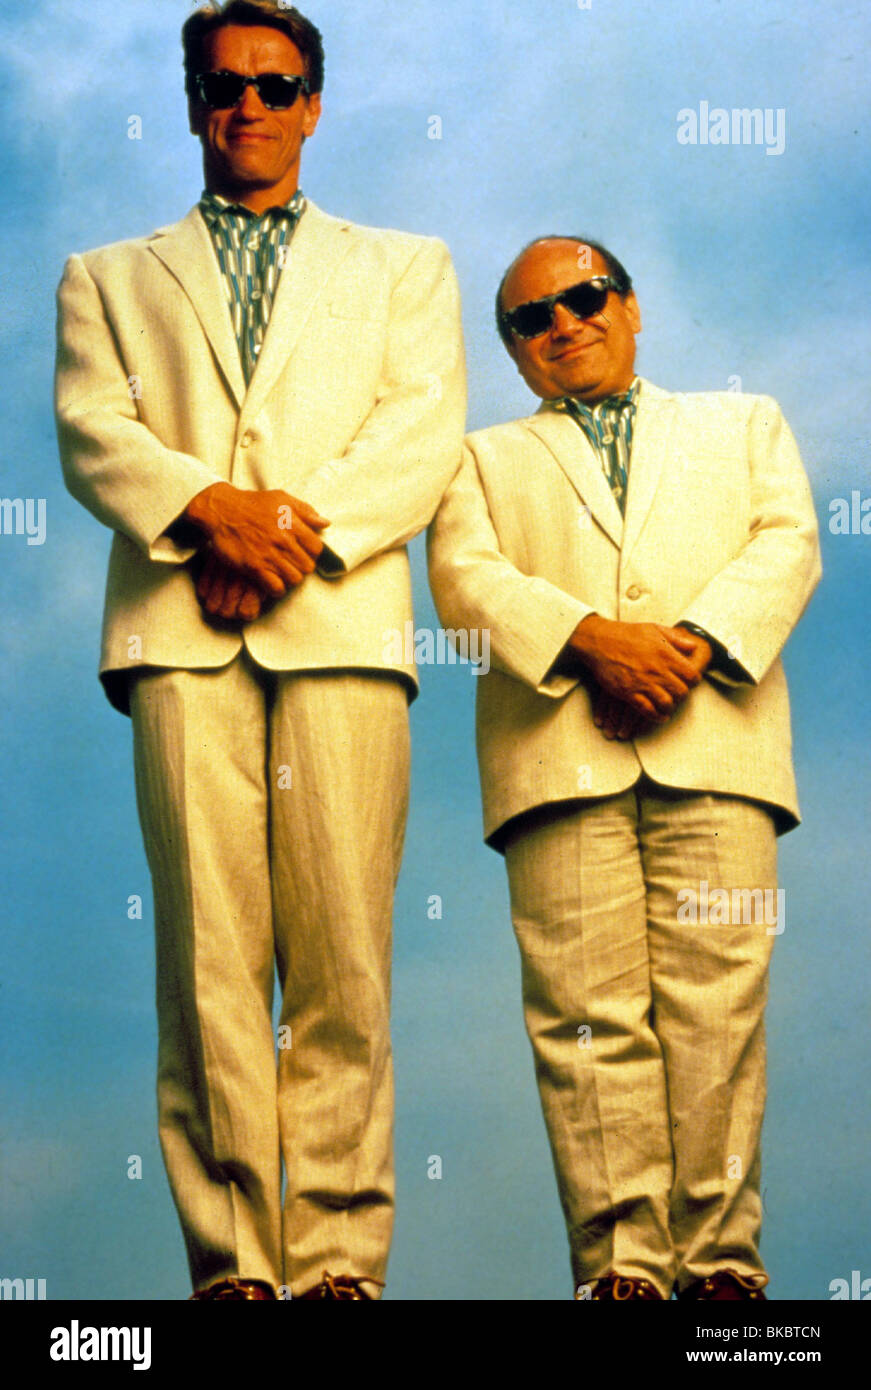 Twins 1988 Arnold Schwarzenegger Danny Devito Tws 023 Stock Photo Alamy